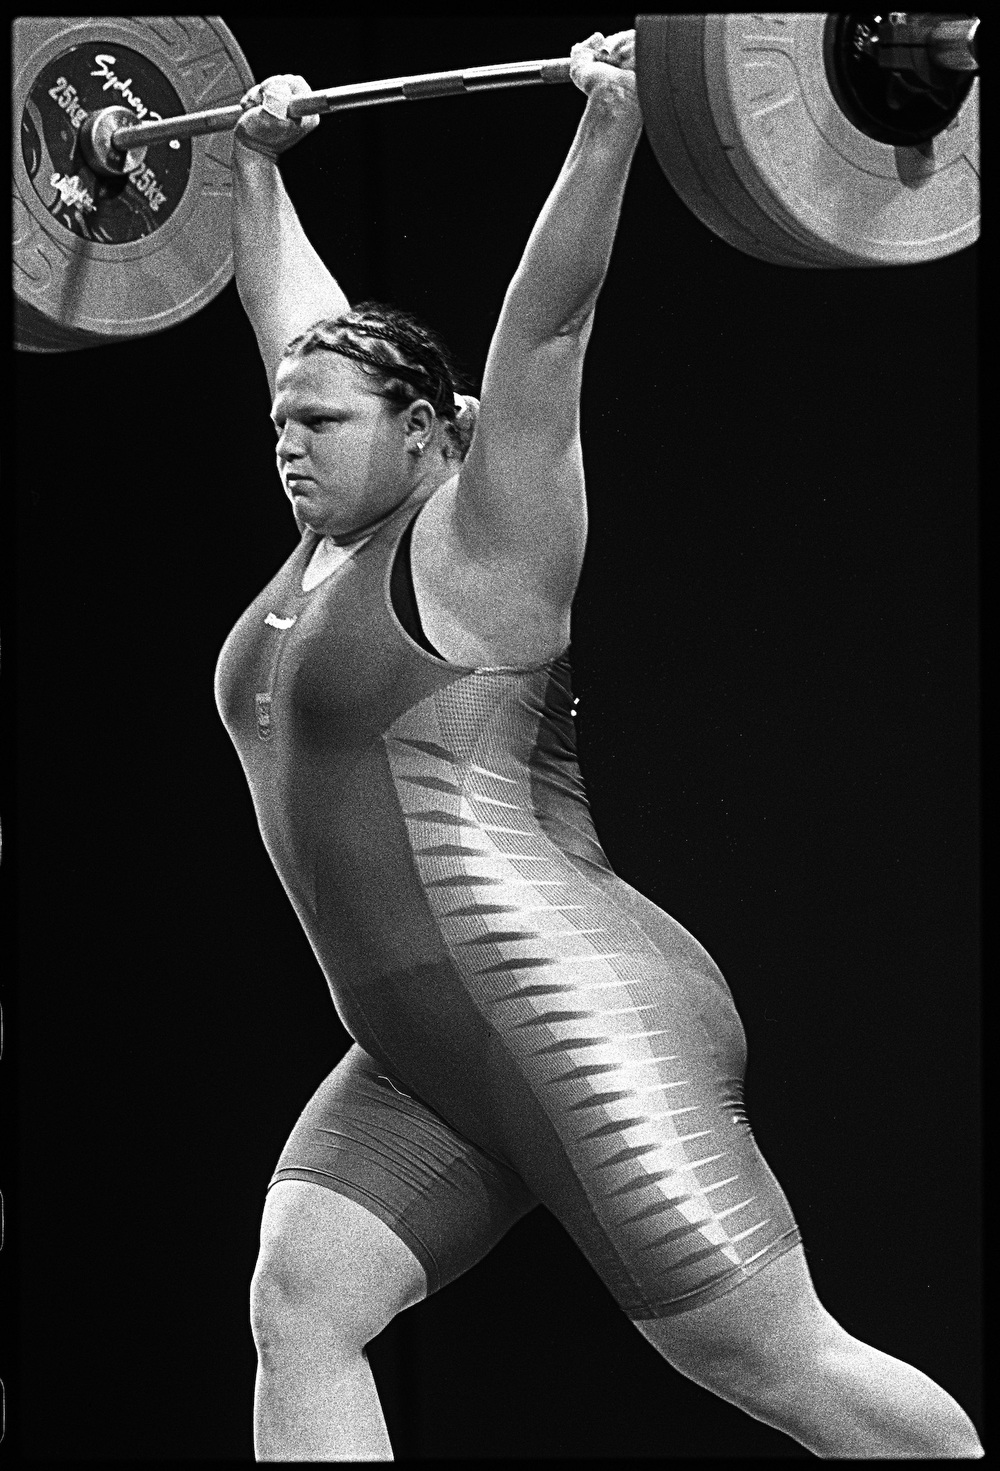 Women's Weightlifting. Sydney, Australia, September 2000.  Inquire about this image